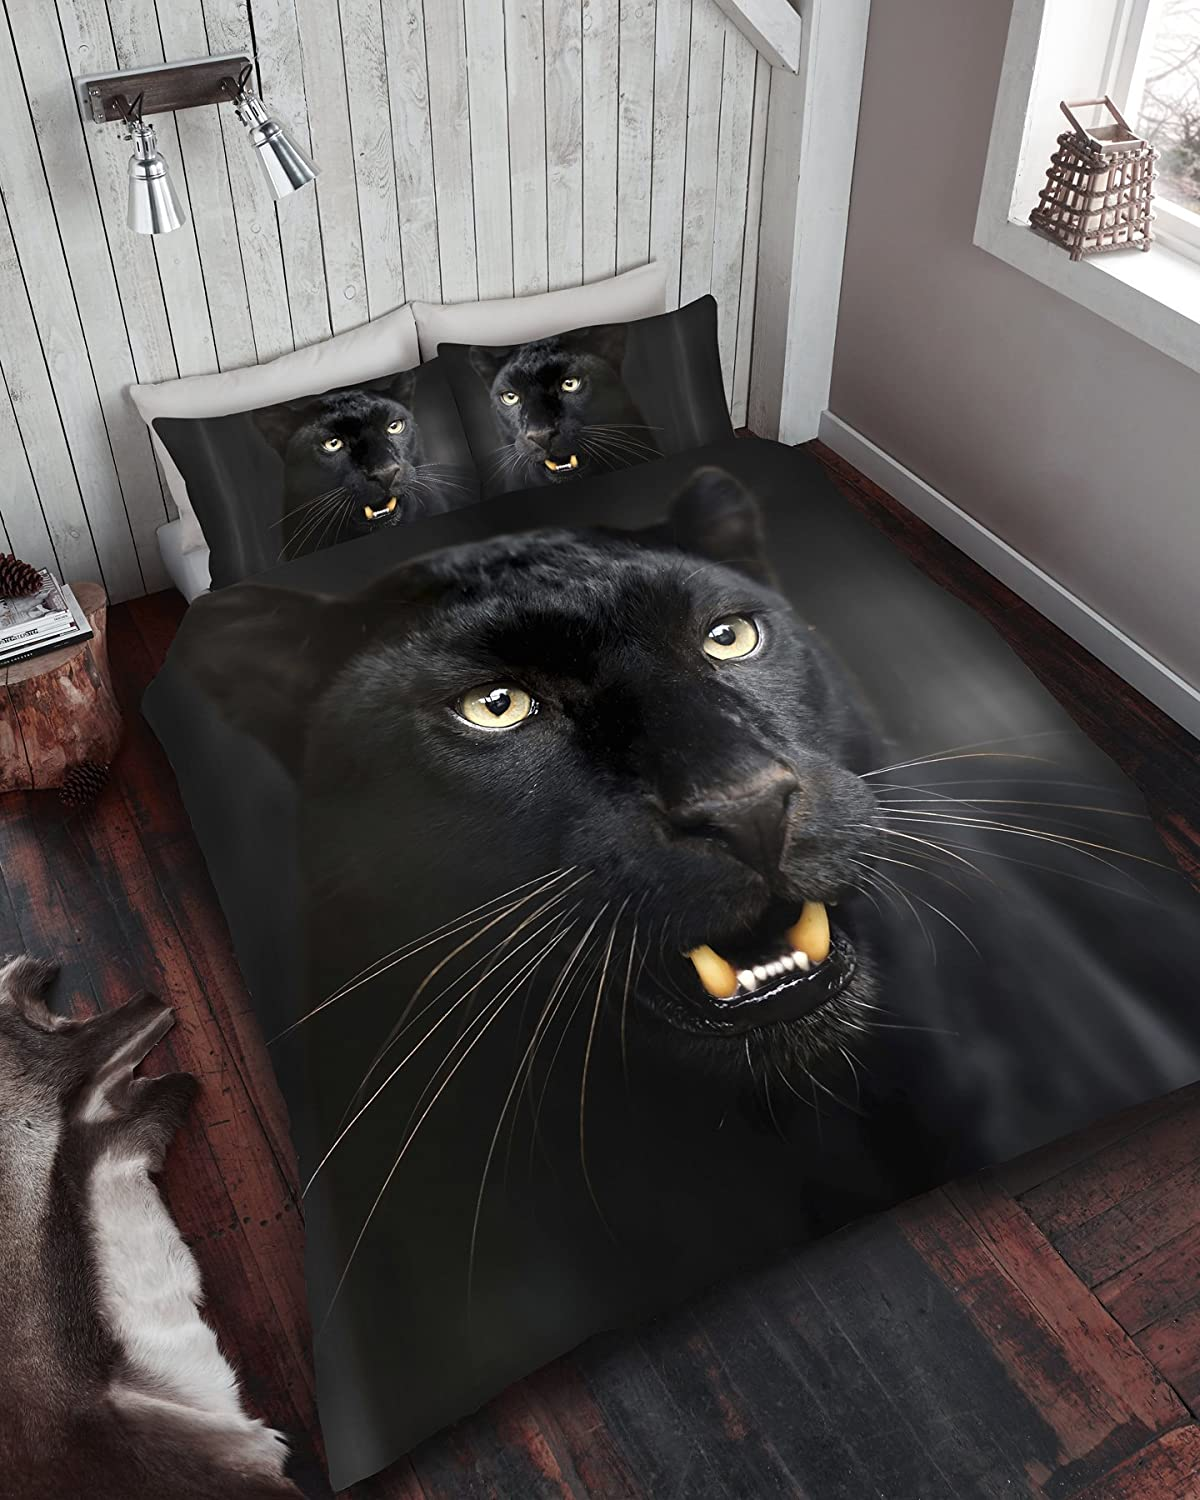 3D Animal Printed Duvet Cover, Quilt Cover Bedding Set single double king (Double, Black Panther) TOPSTYLE